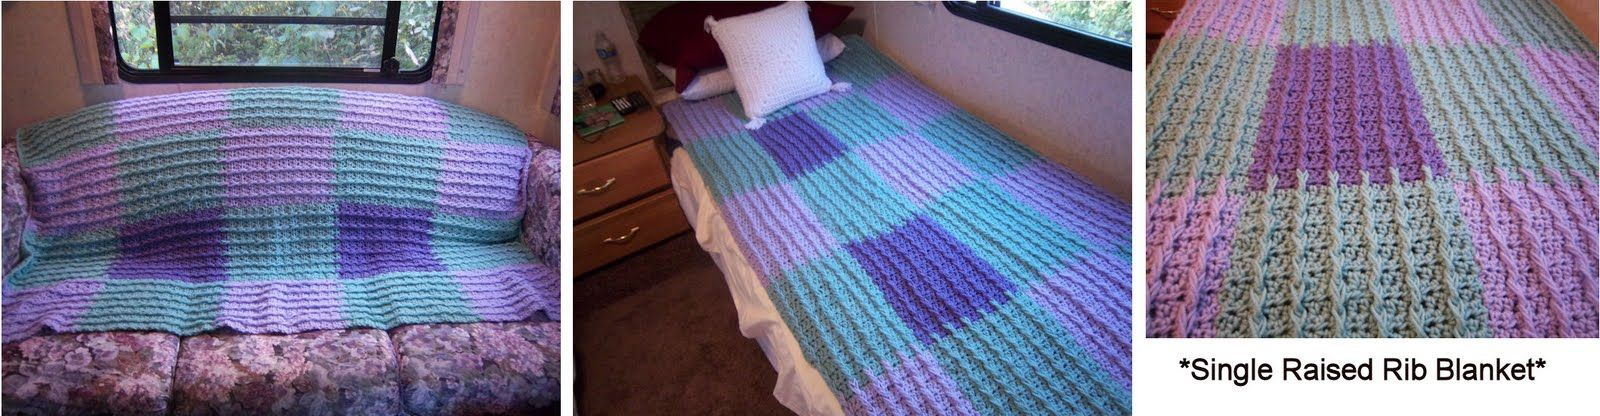 Twin size afghan blanket i used a raised rib crochet stitch twin size afghan blanket i used a raised rib crochet stitch pattern i dt1010fo